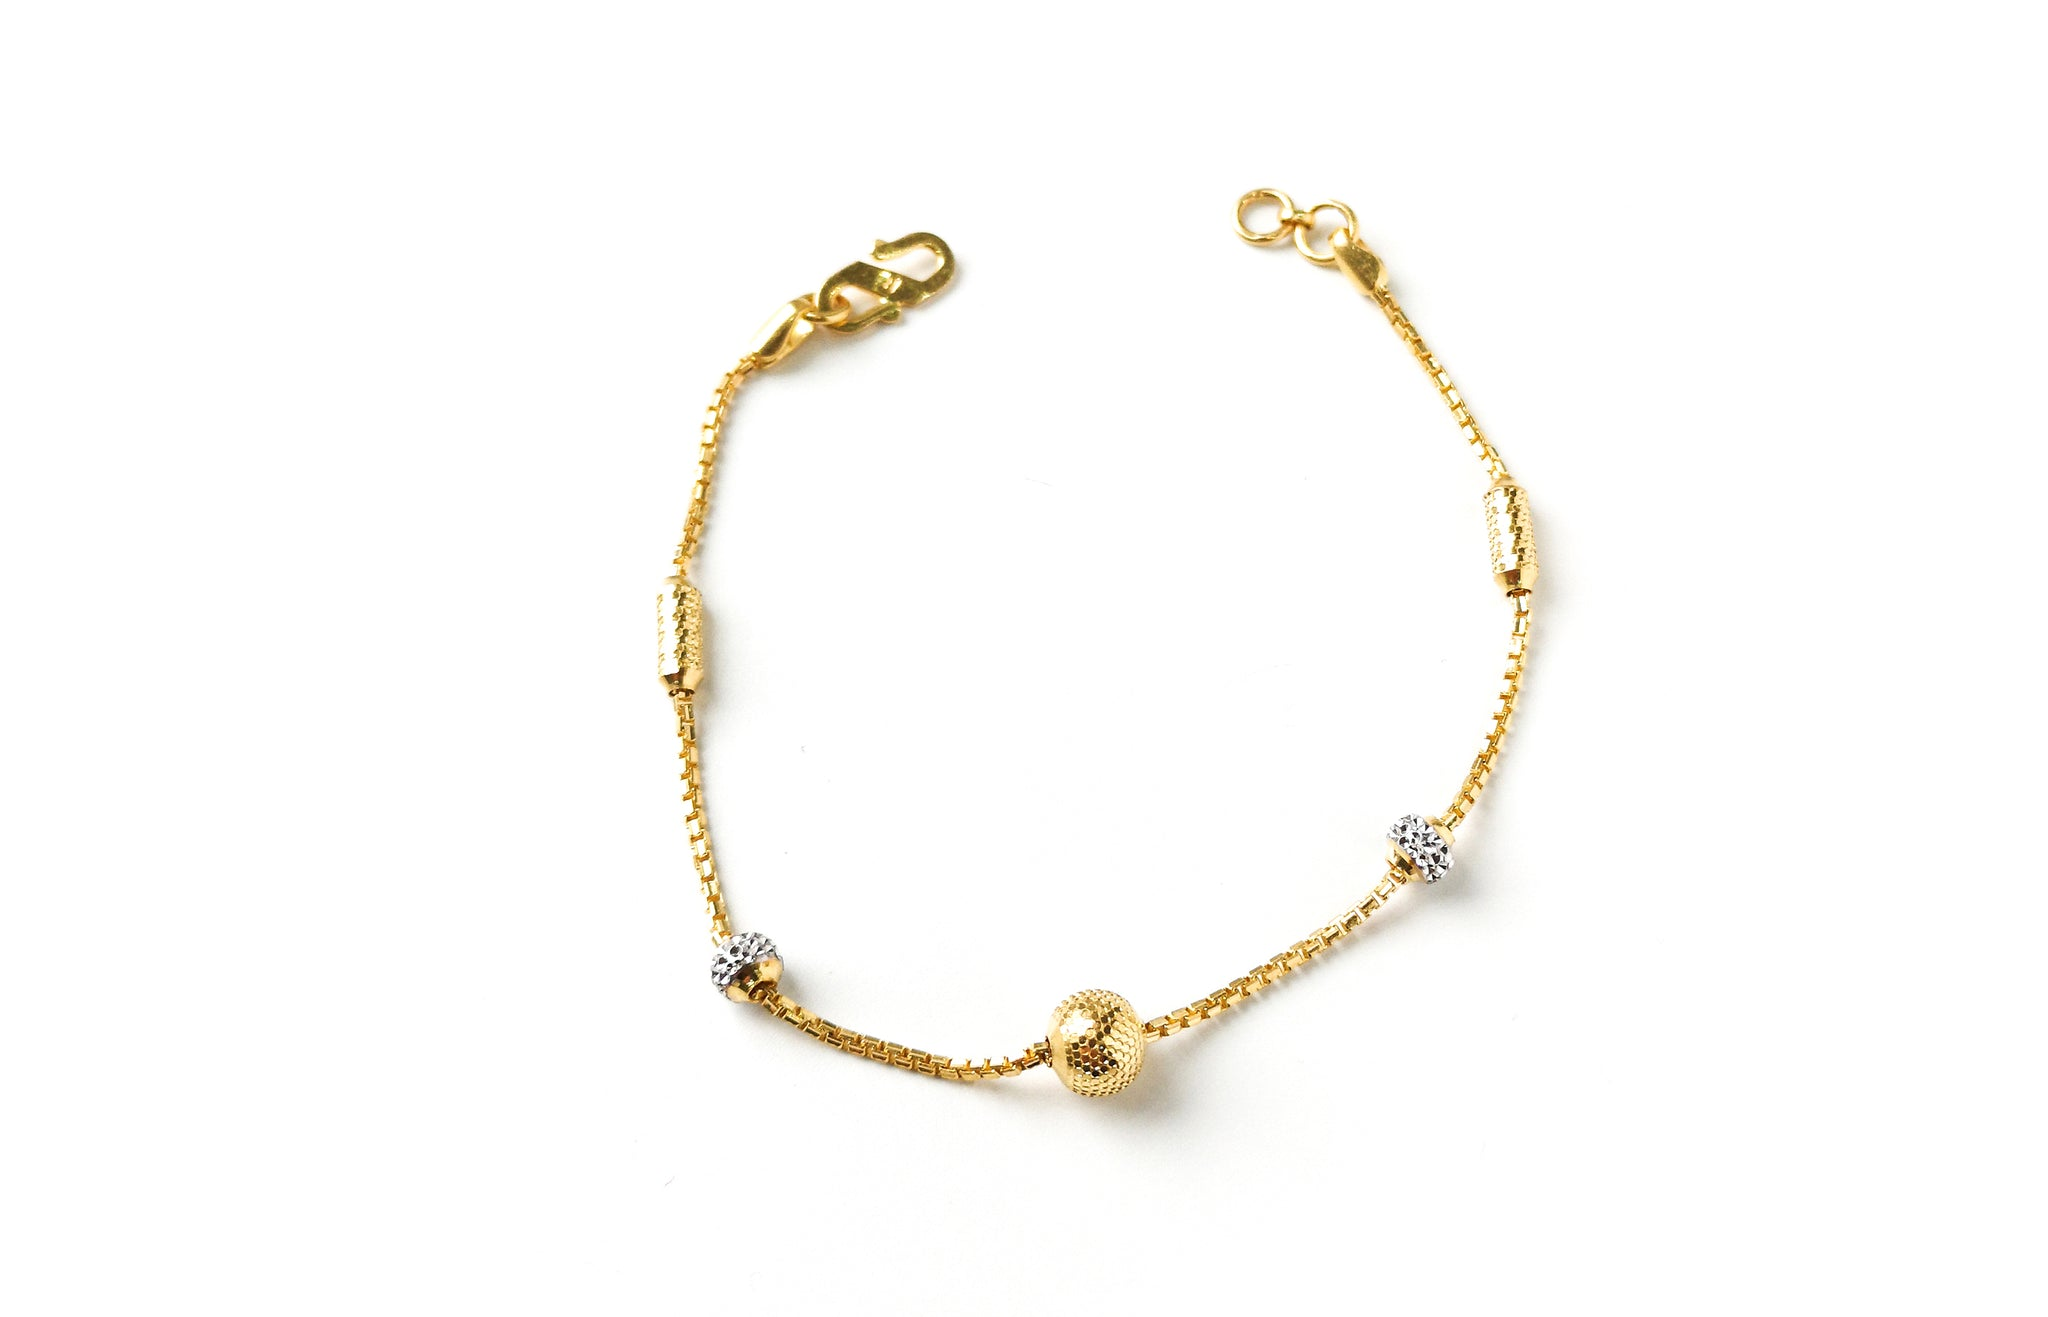 22ct Gold Bracelet with Diamond Cut and Rhodium Design (4.2g) LBR-7658